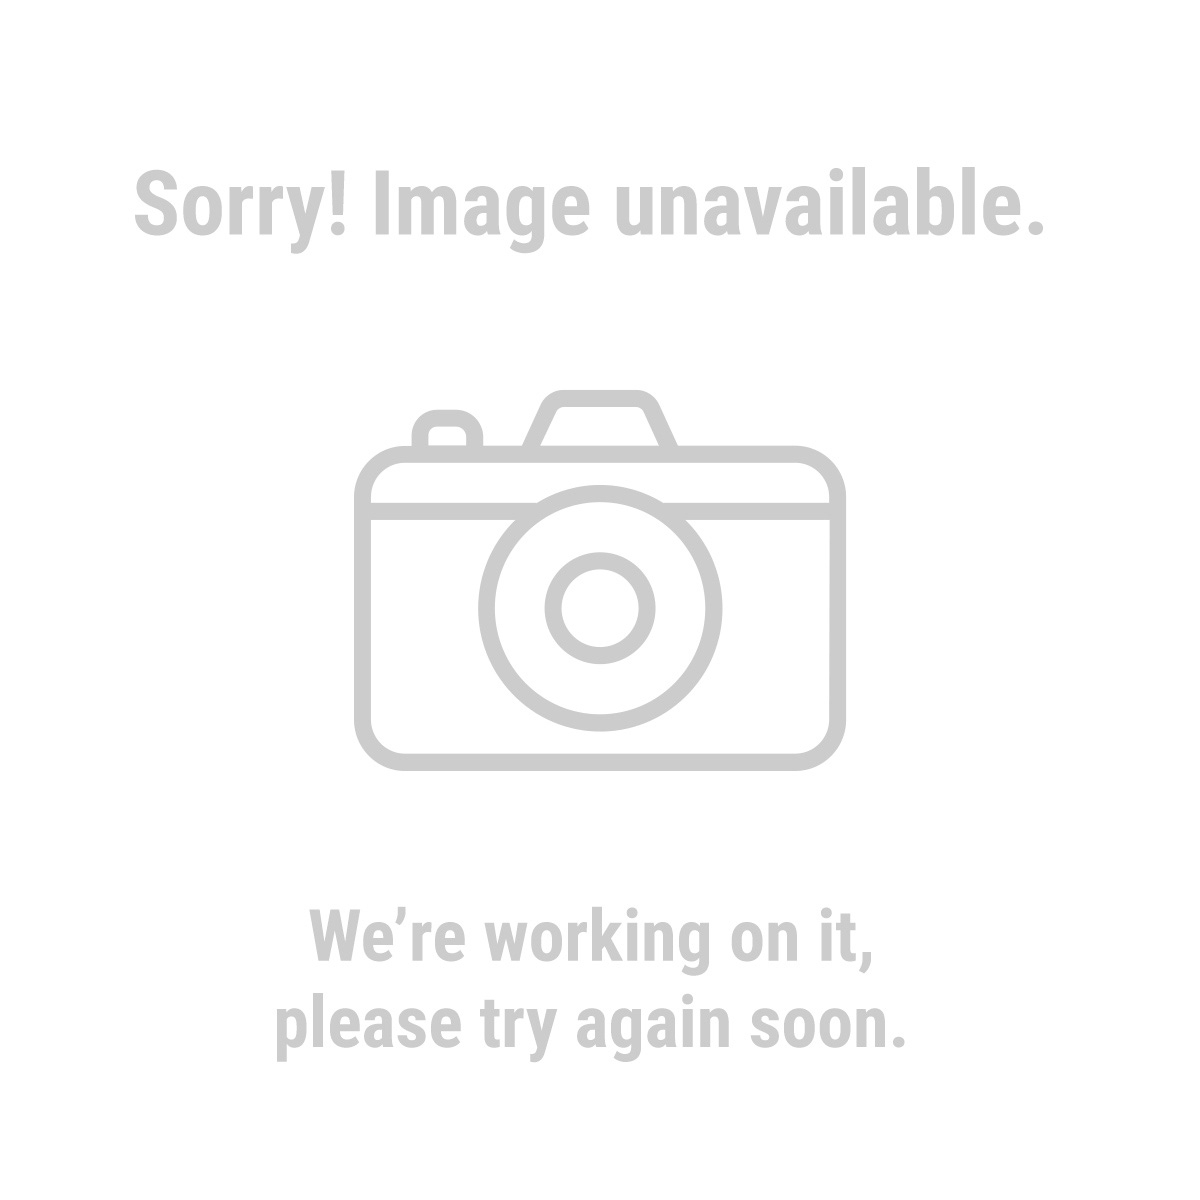 Gordon 36410 56 Piece Precision Knife Set